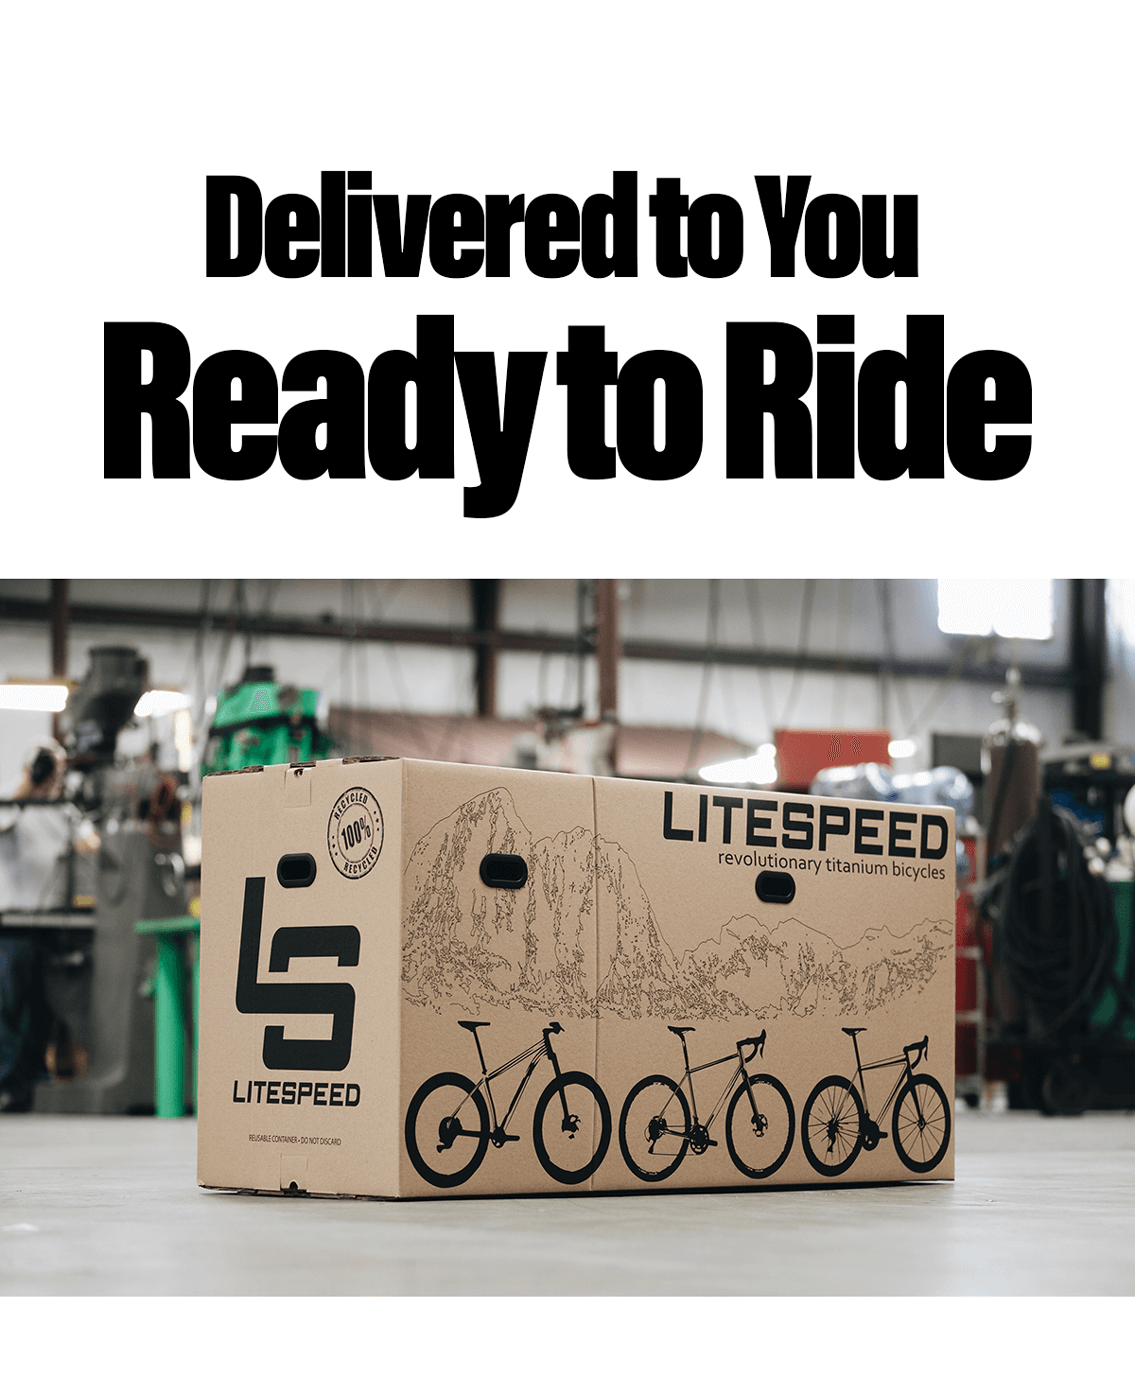 Shipped to your door, fully-assembled and ready to ride.